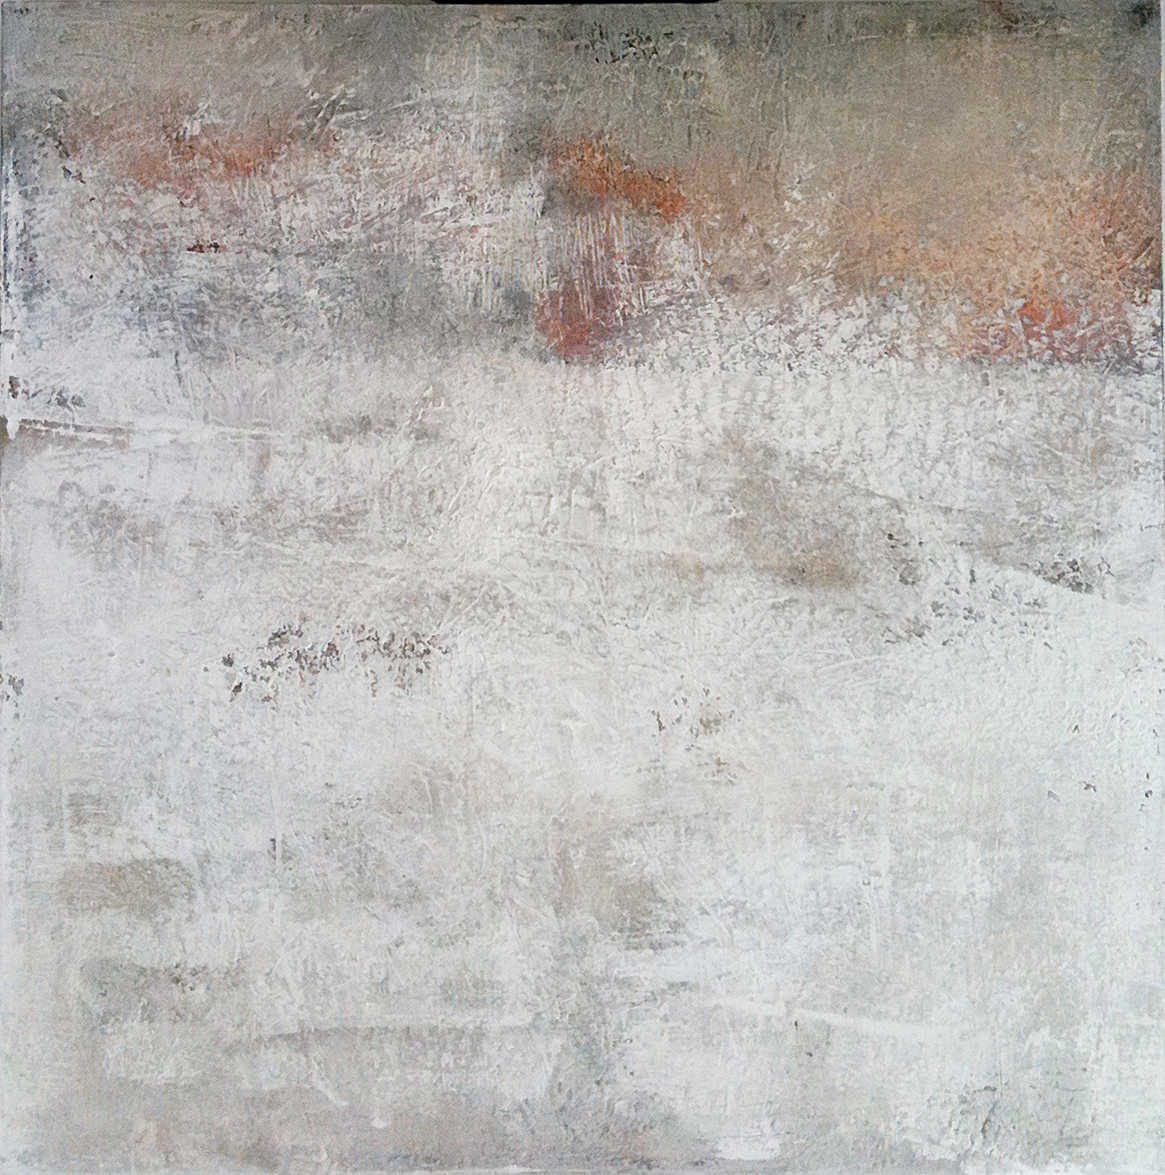 Berlin Muenzstrasse, 2011, 01, 100 x 100 cm, Acrylic on Canvas